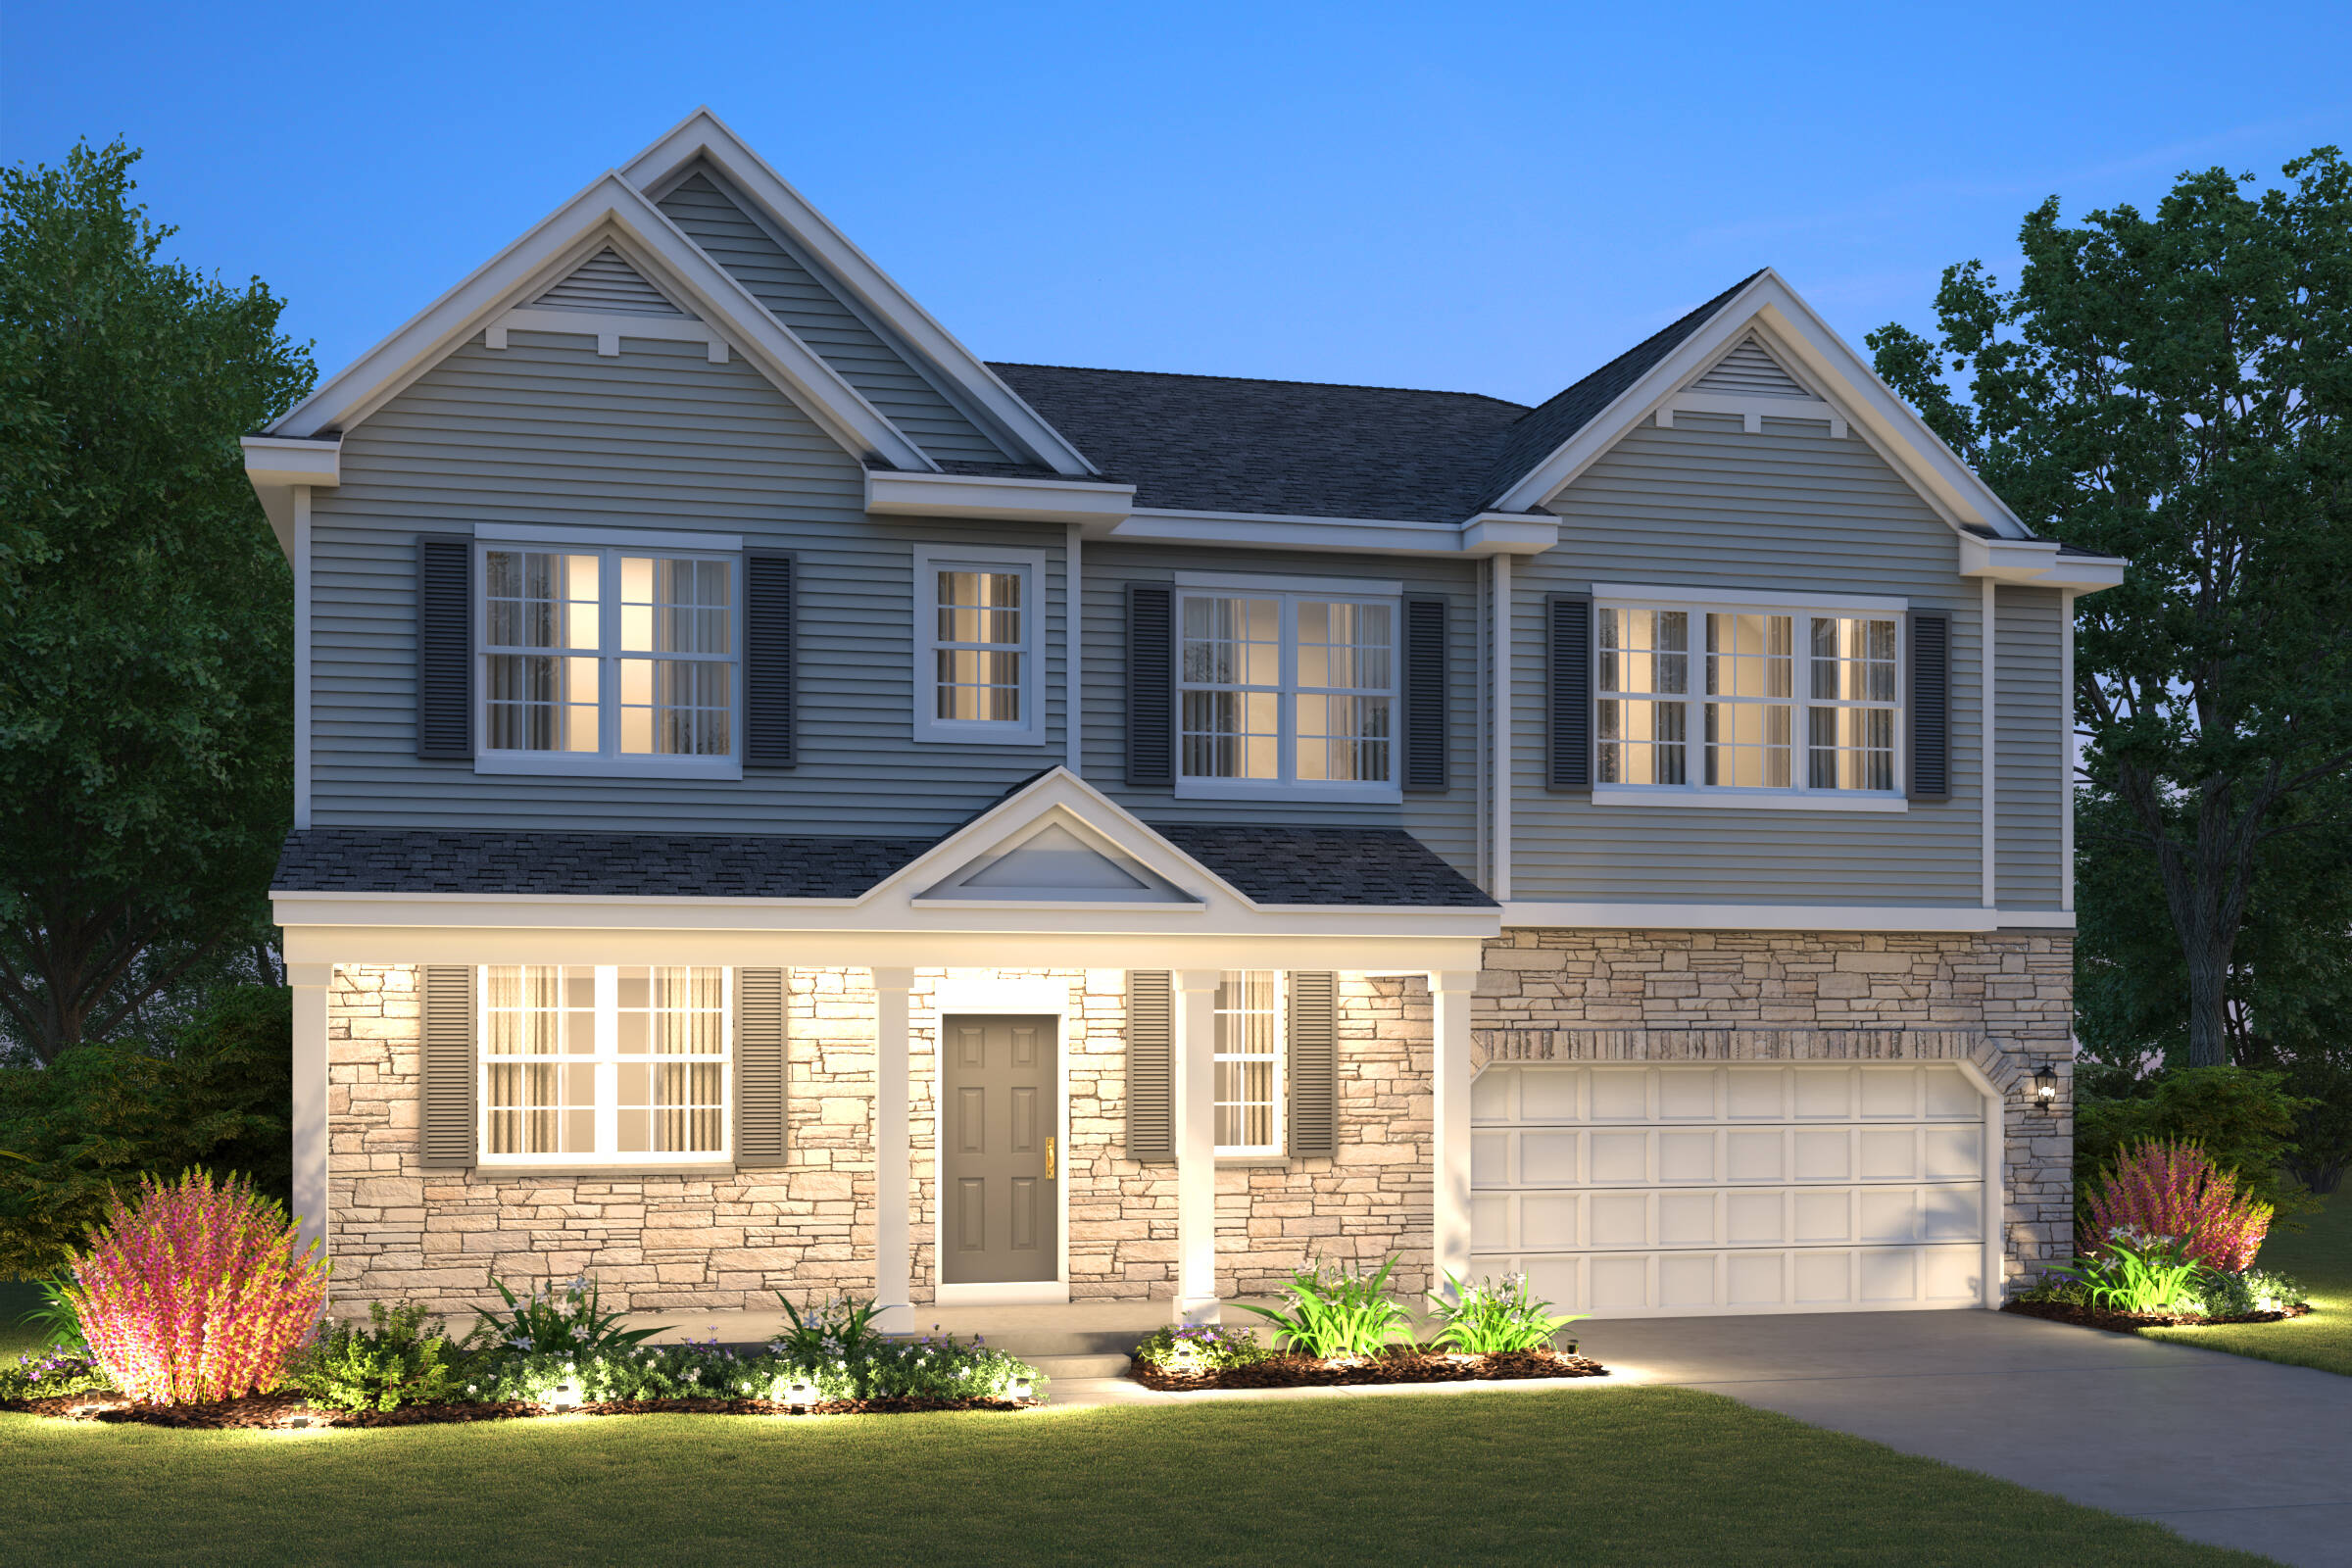 new-homes-sycamore-north-grove-crossing-6005-Jewel Cortland-D-Stone-elev